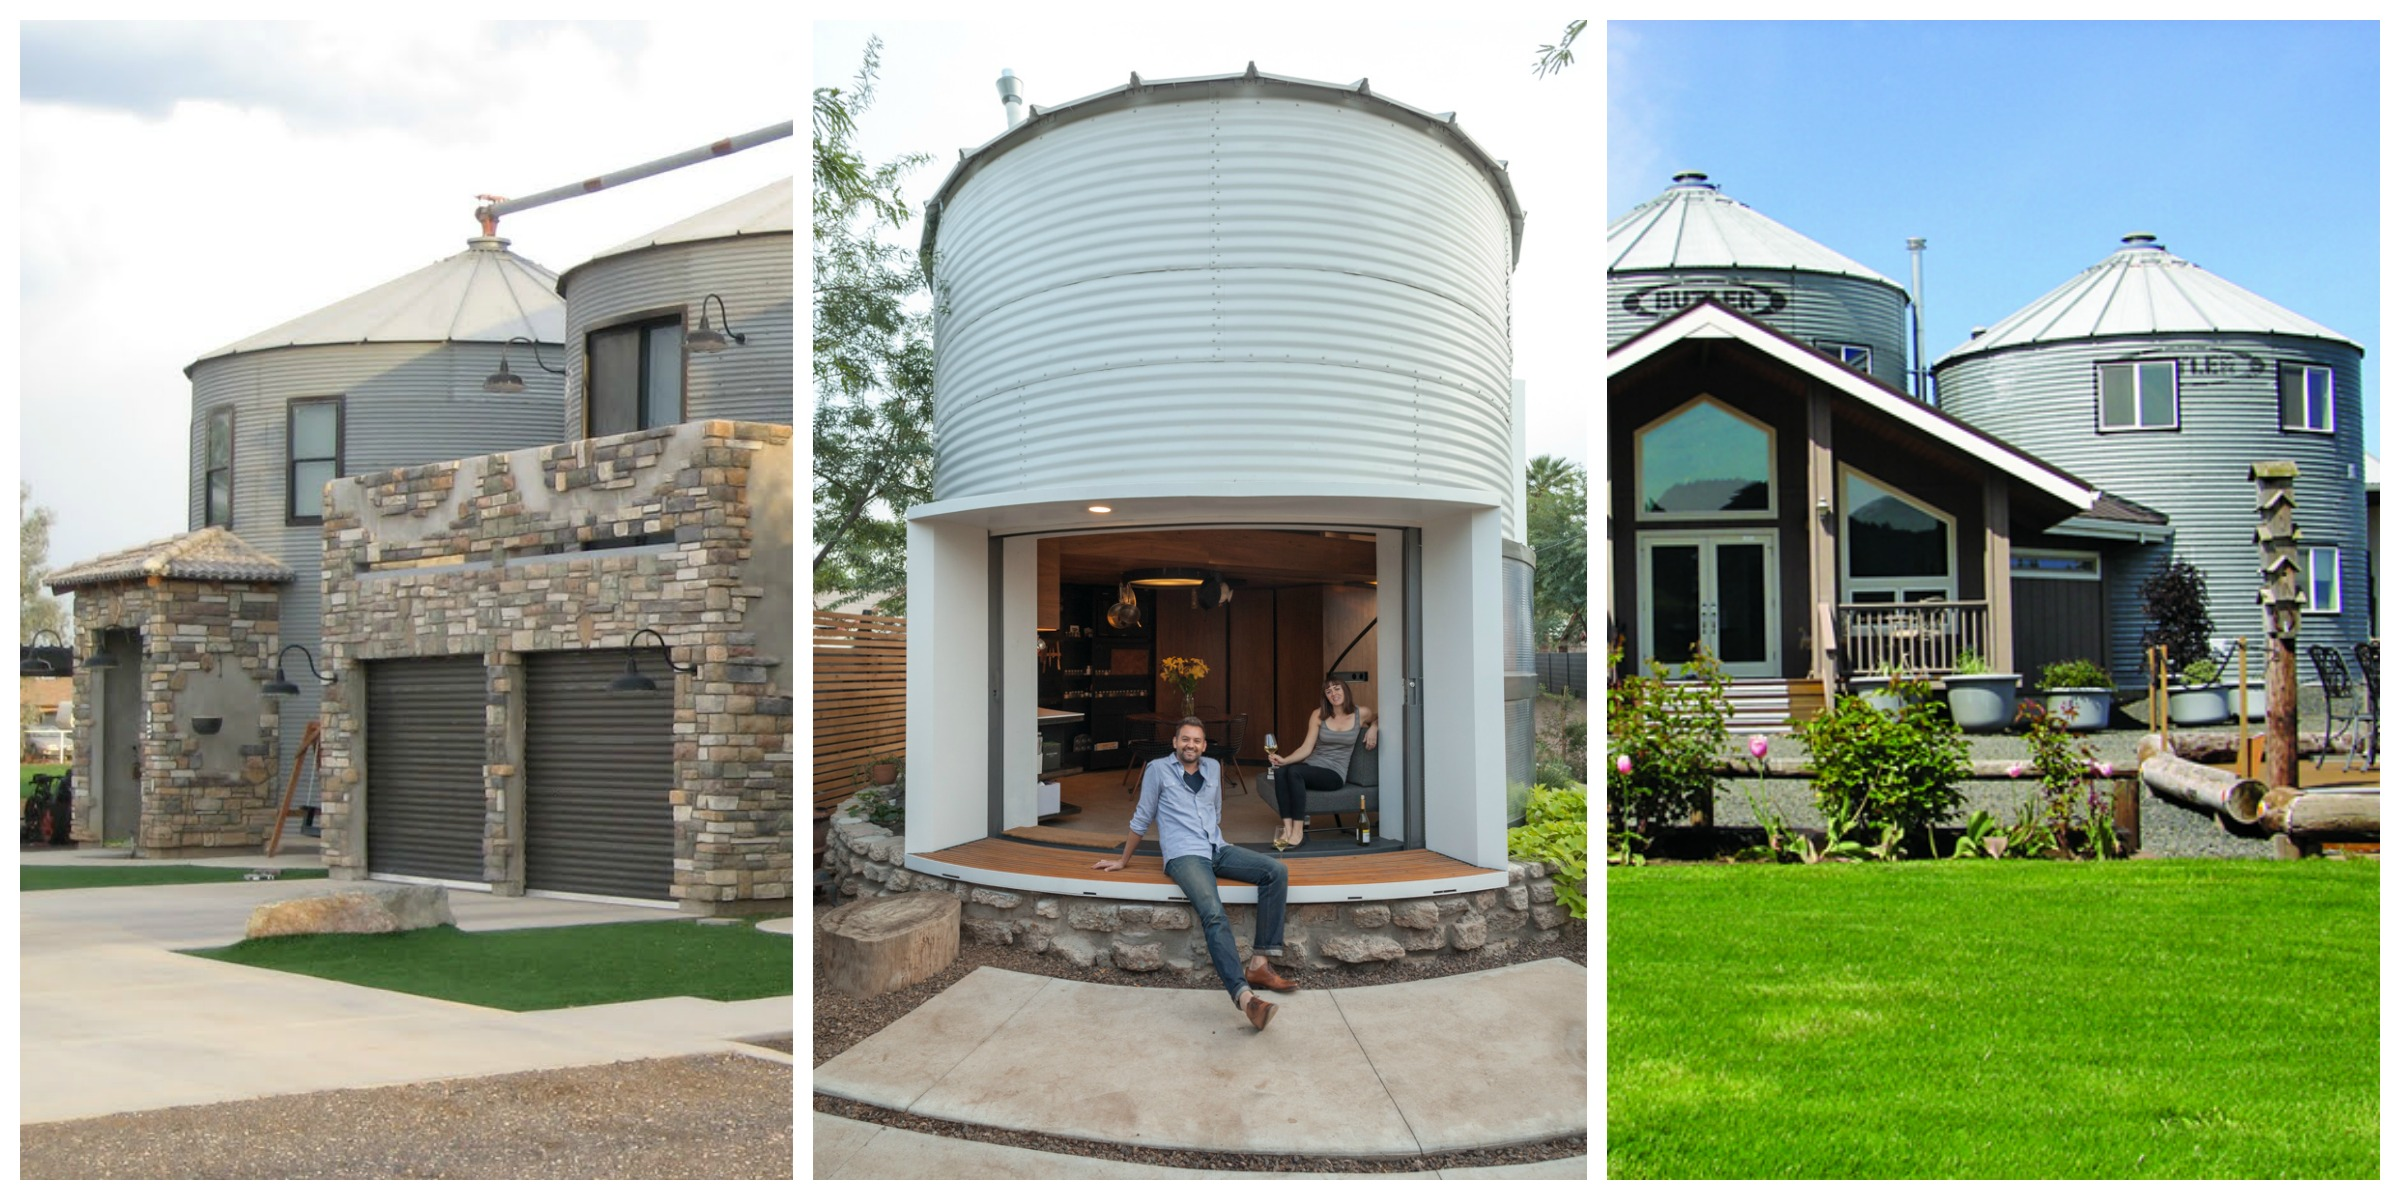 Silos Converted to Houses - Non-Traditional Homes